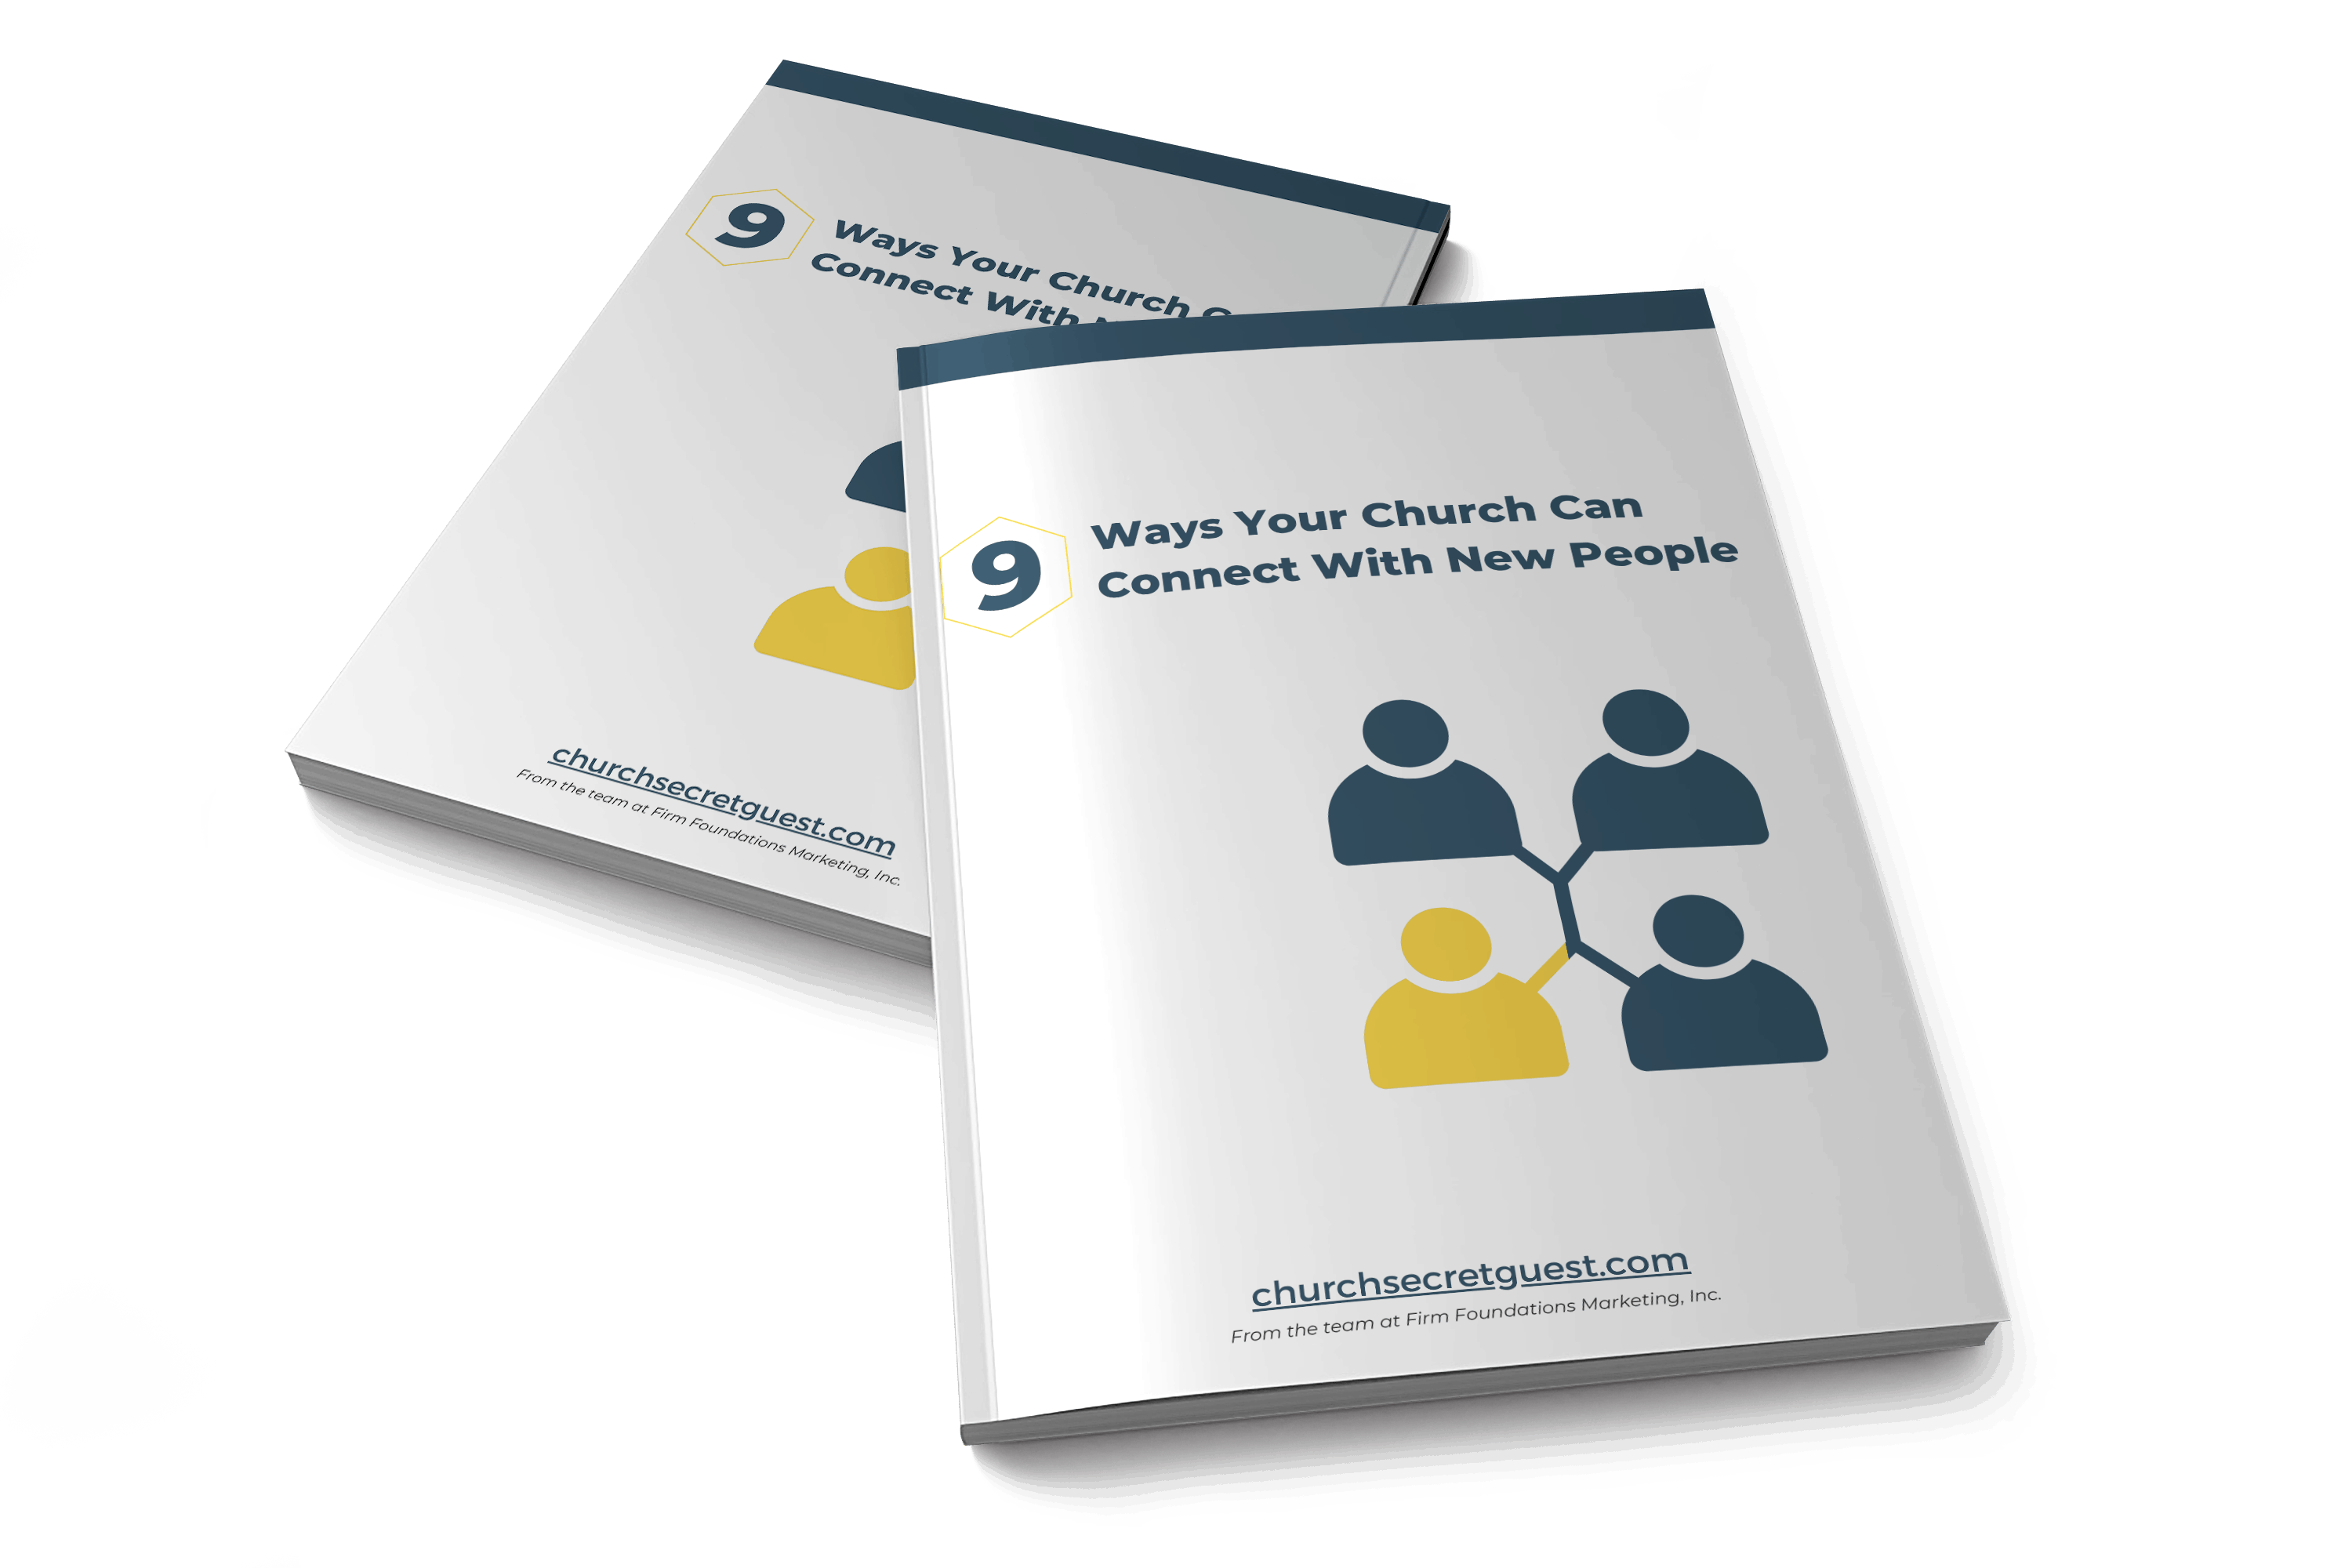 9 Ways Your Church Can Connect with New People eBook